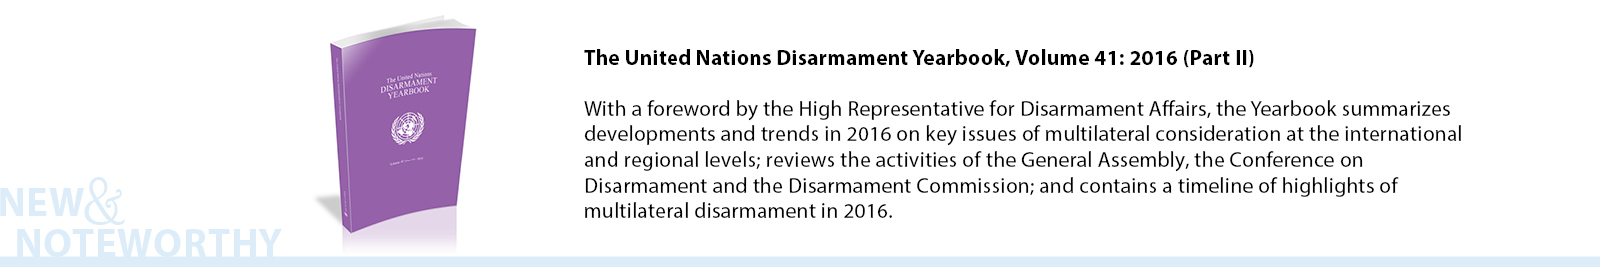 The United Nations Disarmament Yearbook, Volume 41: 2016 (Part II) - With a foreword by the High Representative for Disarmament Affairs, the Yearbook summarizes developments and trends in 2016 on key issues of multilateral consideration at the international and regional levels; reviews the activities of the General Assembly, the Conference on Disarmament and the Disarmament Commission; and contains a timeline of highlights of multilateral disarmament in 2016.